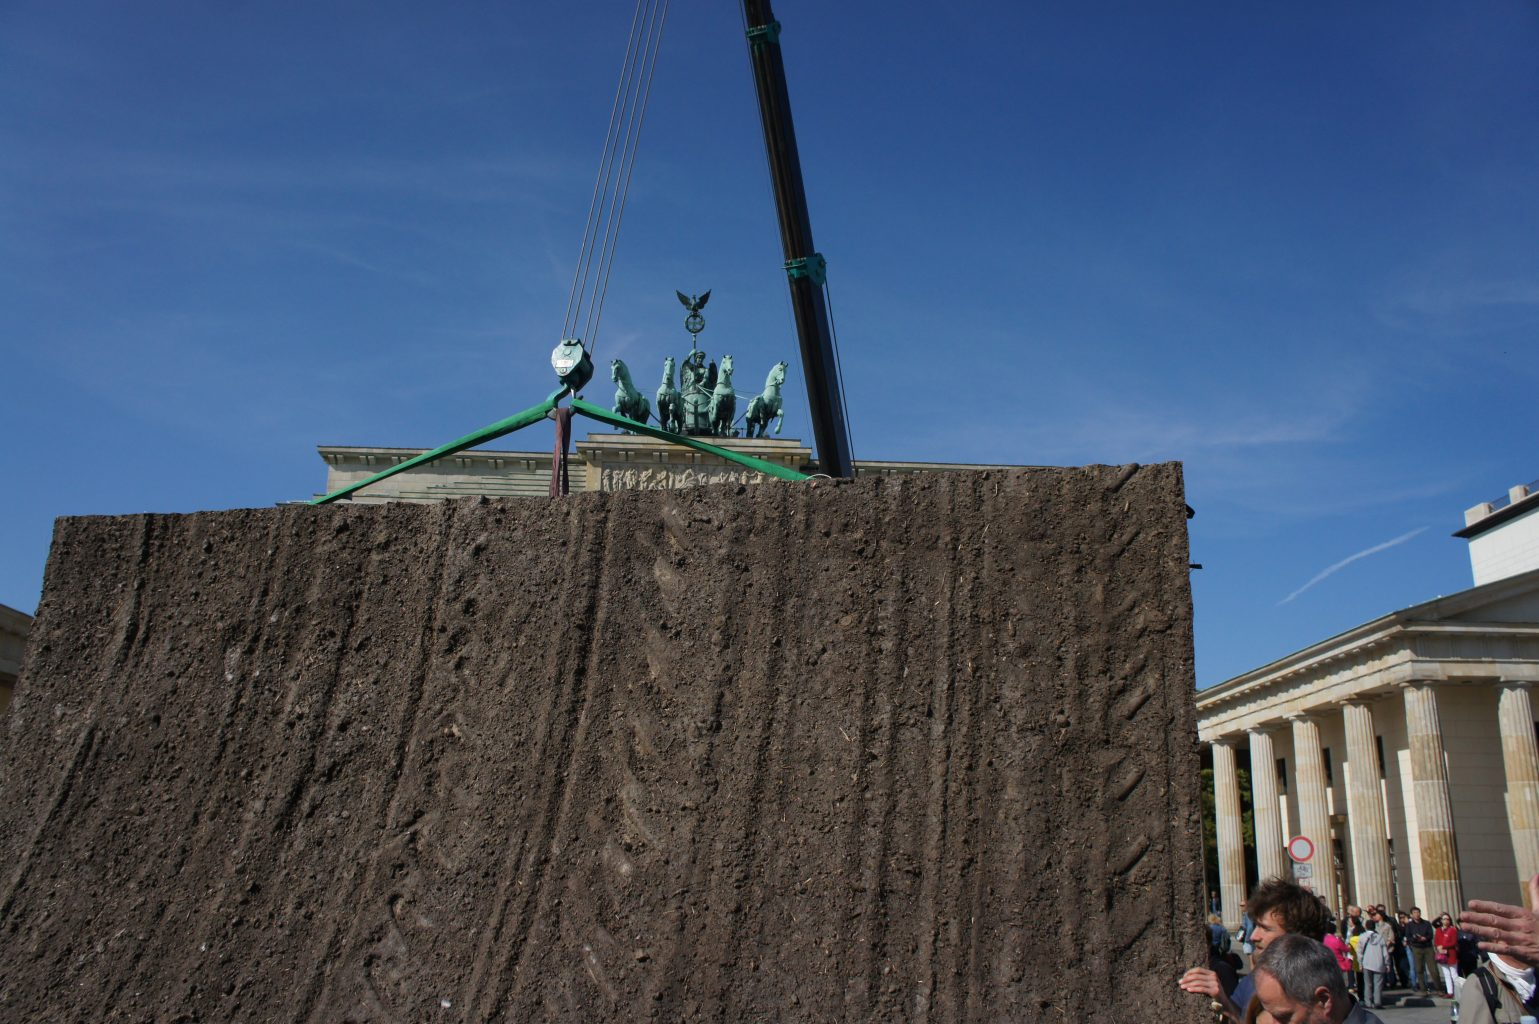 Acre, 5,2m x 5,6m, at Brandenburger Tor, Berlin,  Germany